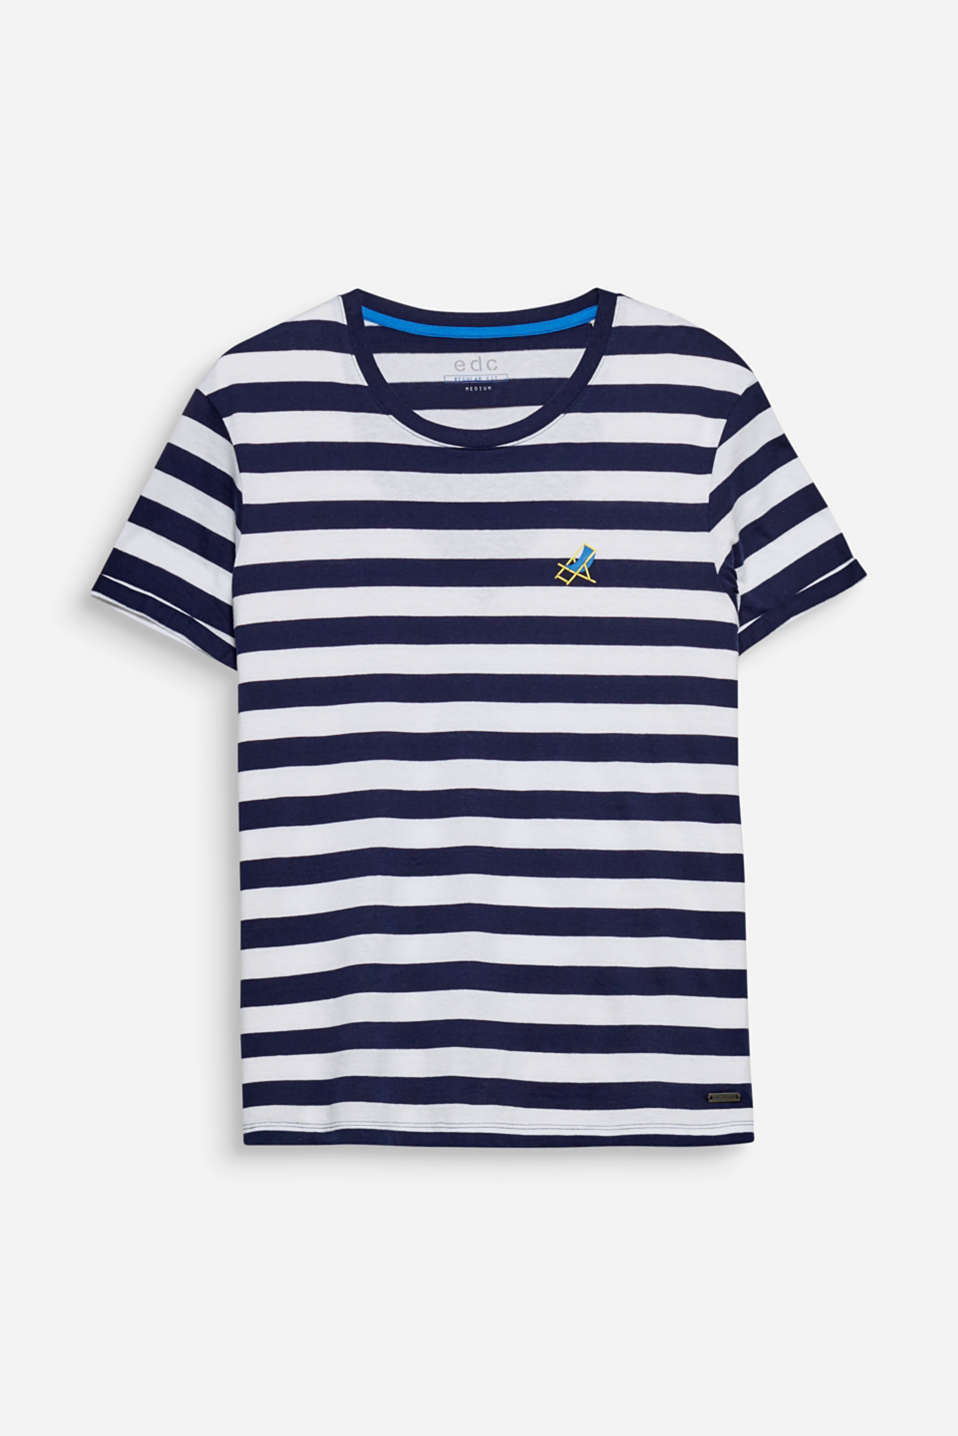 A fine detail seen at second glance: the small beach chair on the left hand side of the chest is a colourful update for this striped T-shirt.